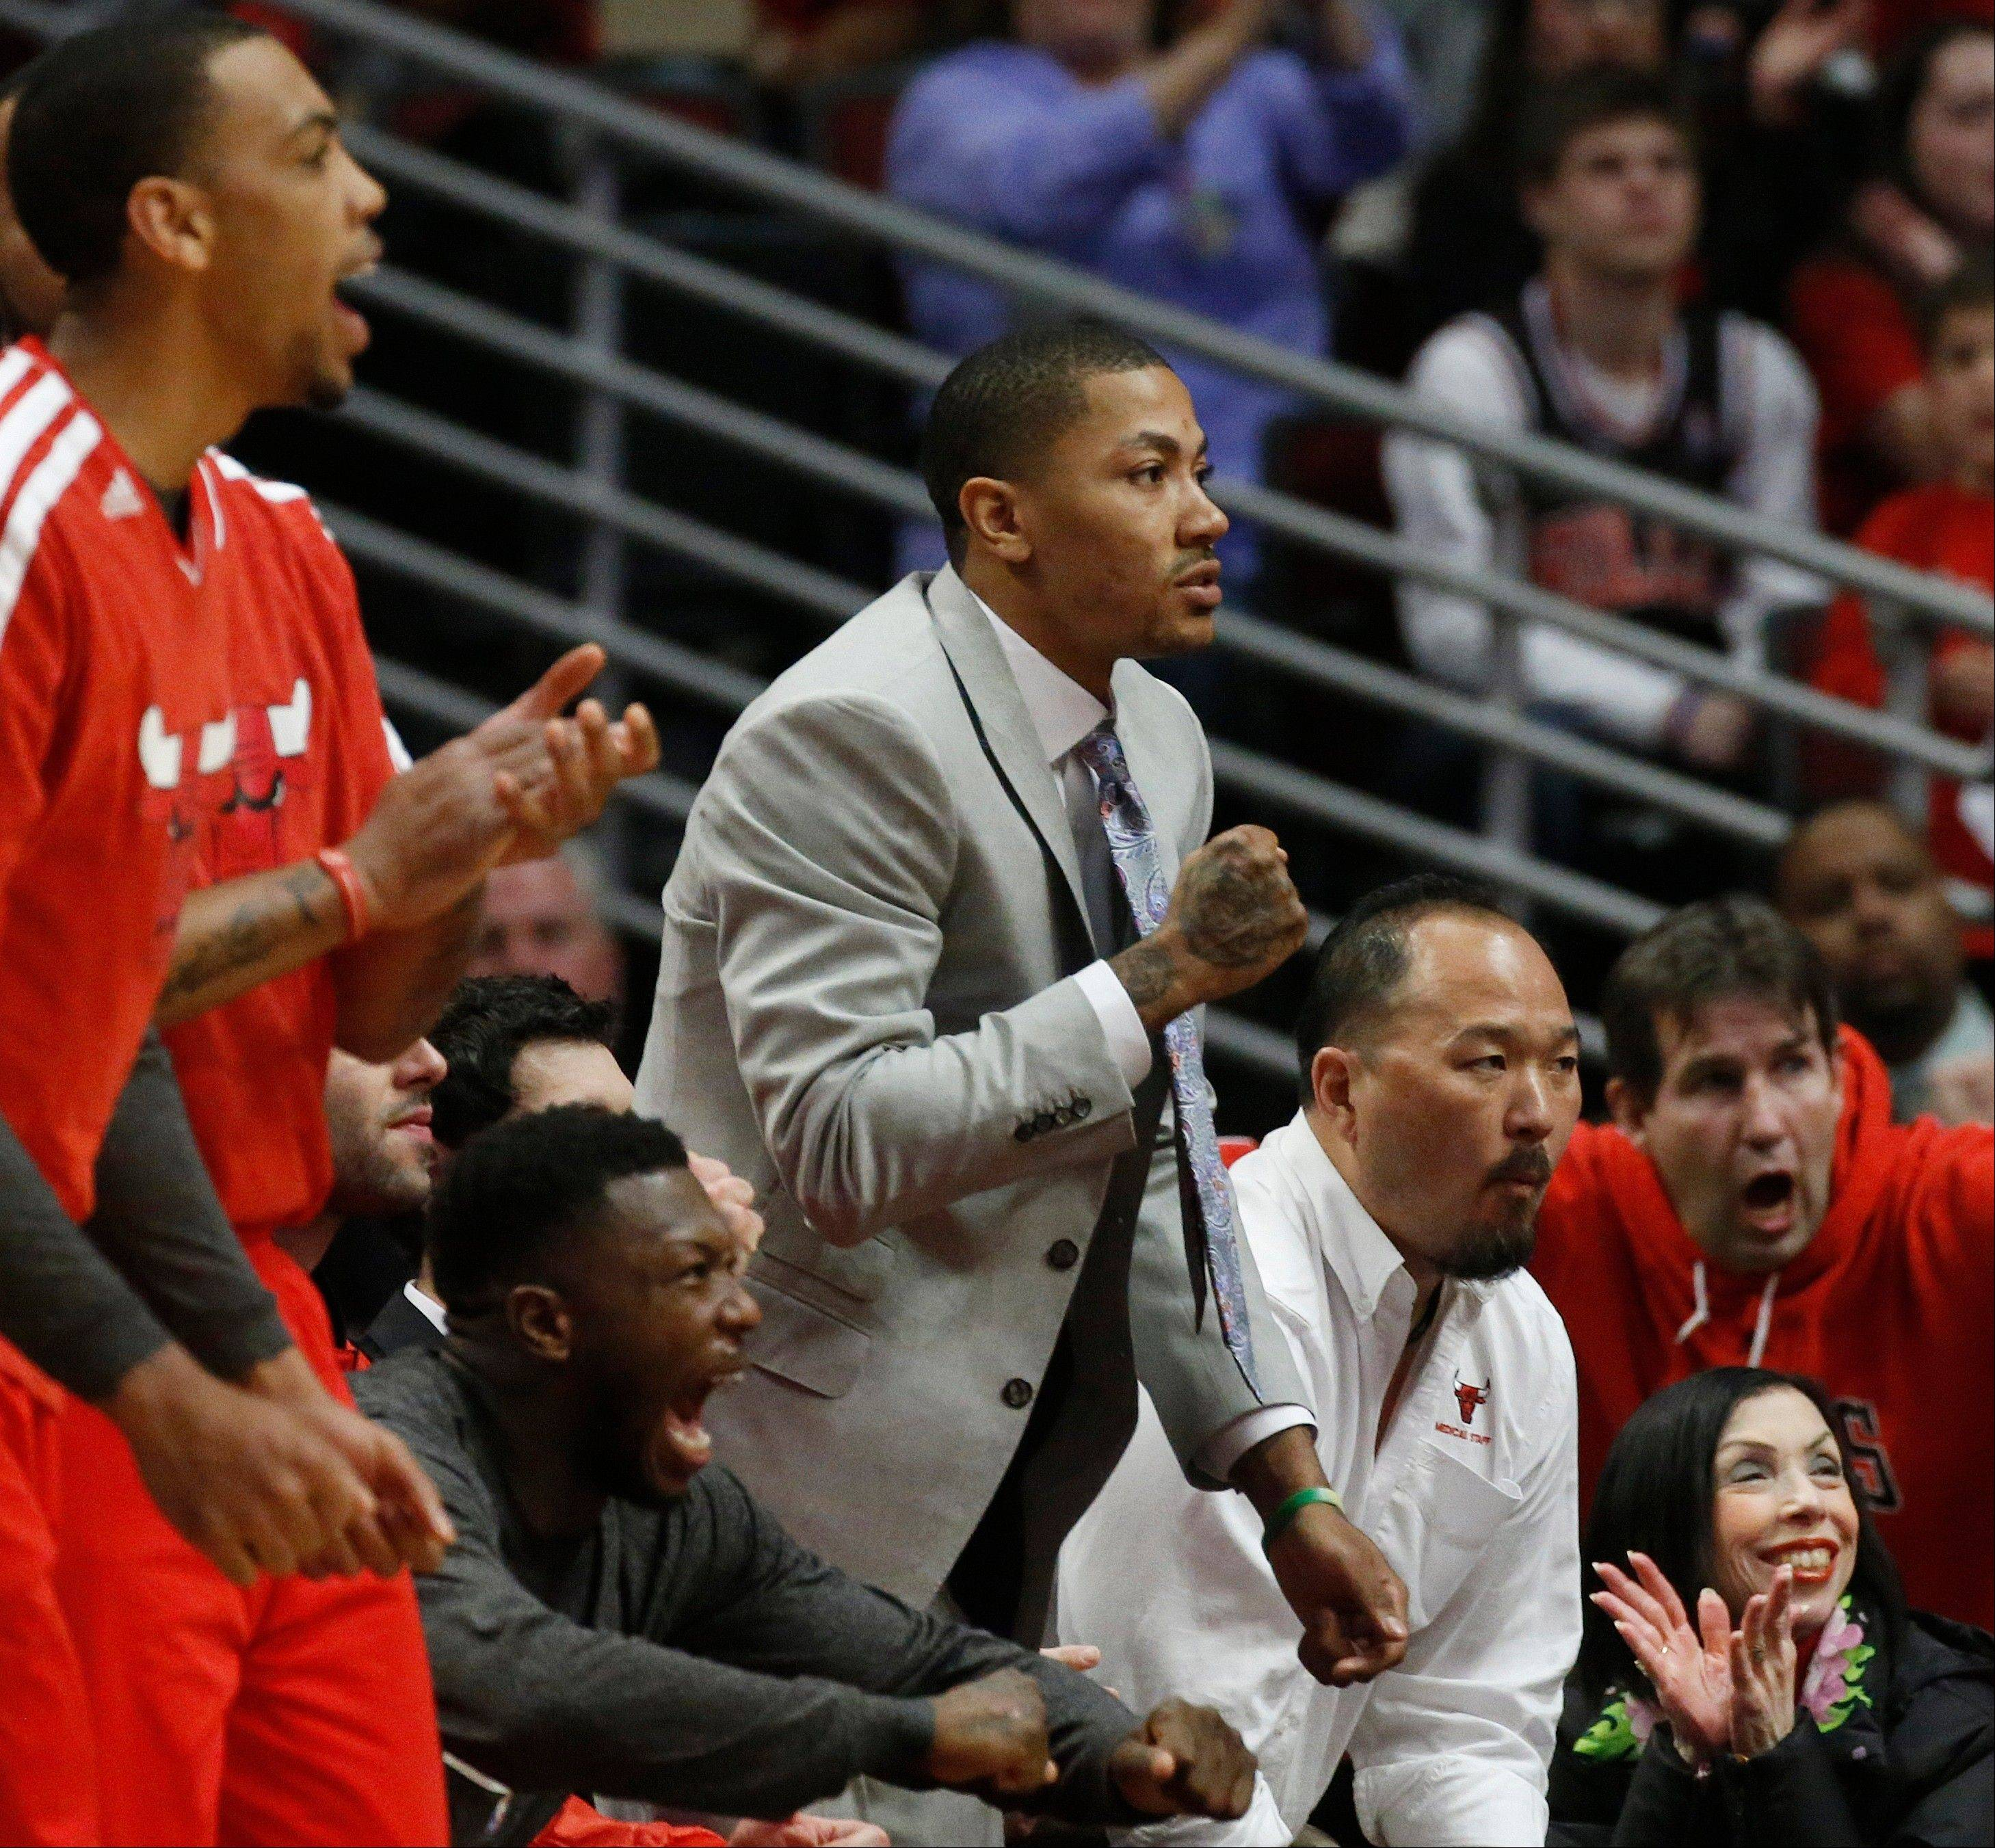 Chicago Bulls' Derrick Rose, in suit at center, cheers the team during the first half of Game 3 of an NBA basketball playoffs Eastern Conference semifinal against the Miami Heat on Friday, May 10, 2013, in Chicago.